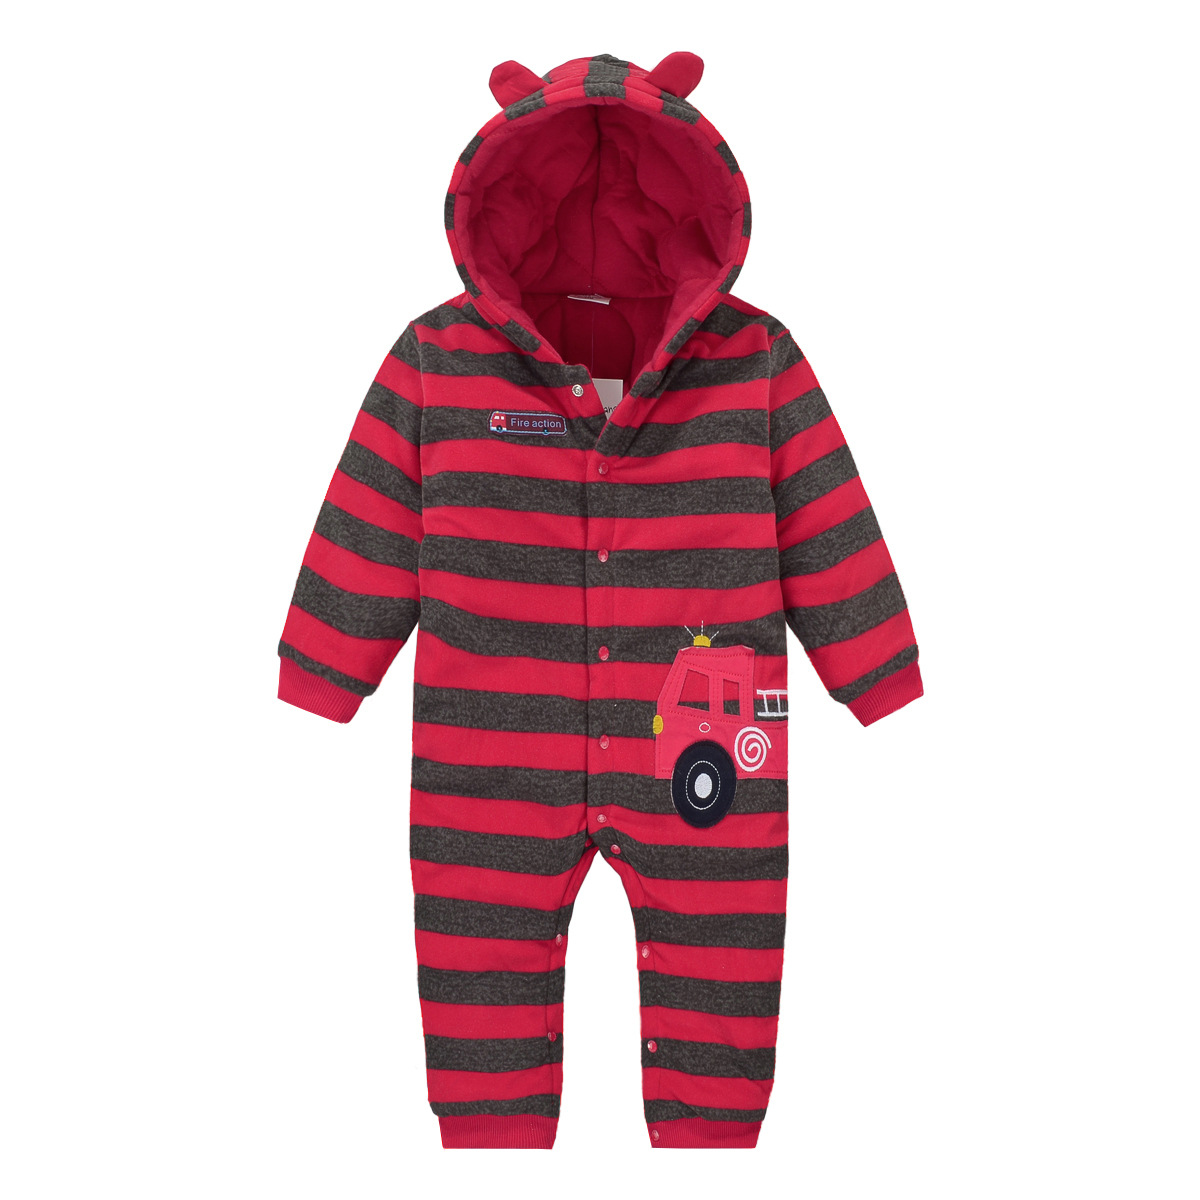 Cross Border Supply Of Goods European And American Style Brand Plus Cotton Romper Red Stripes Cartoon Car Baby Onesie Winter Thi